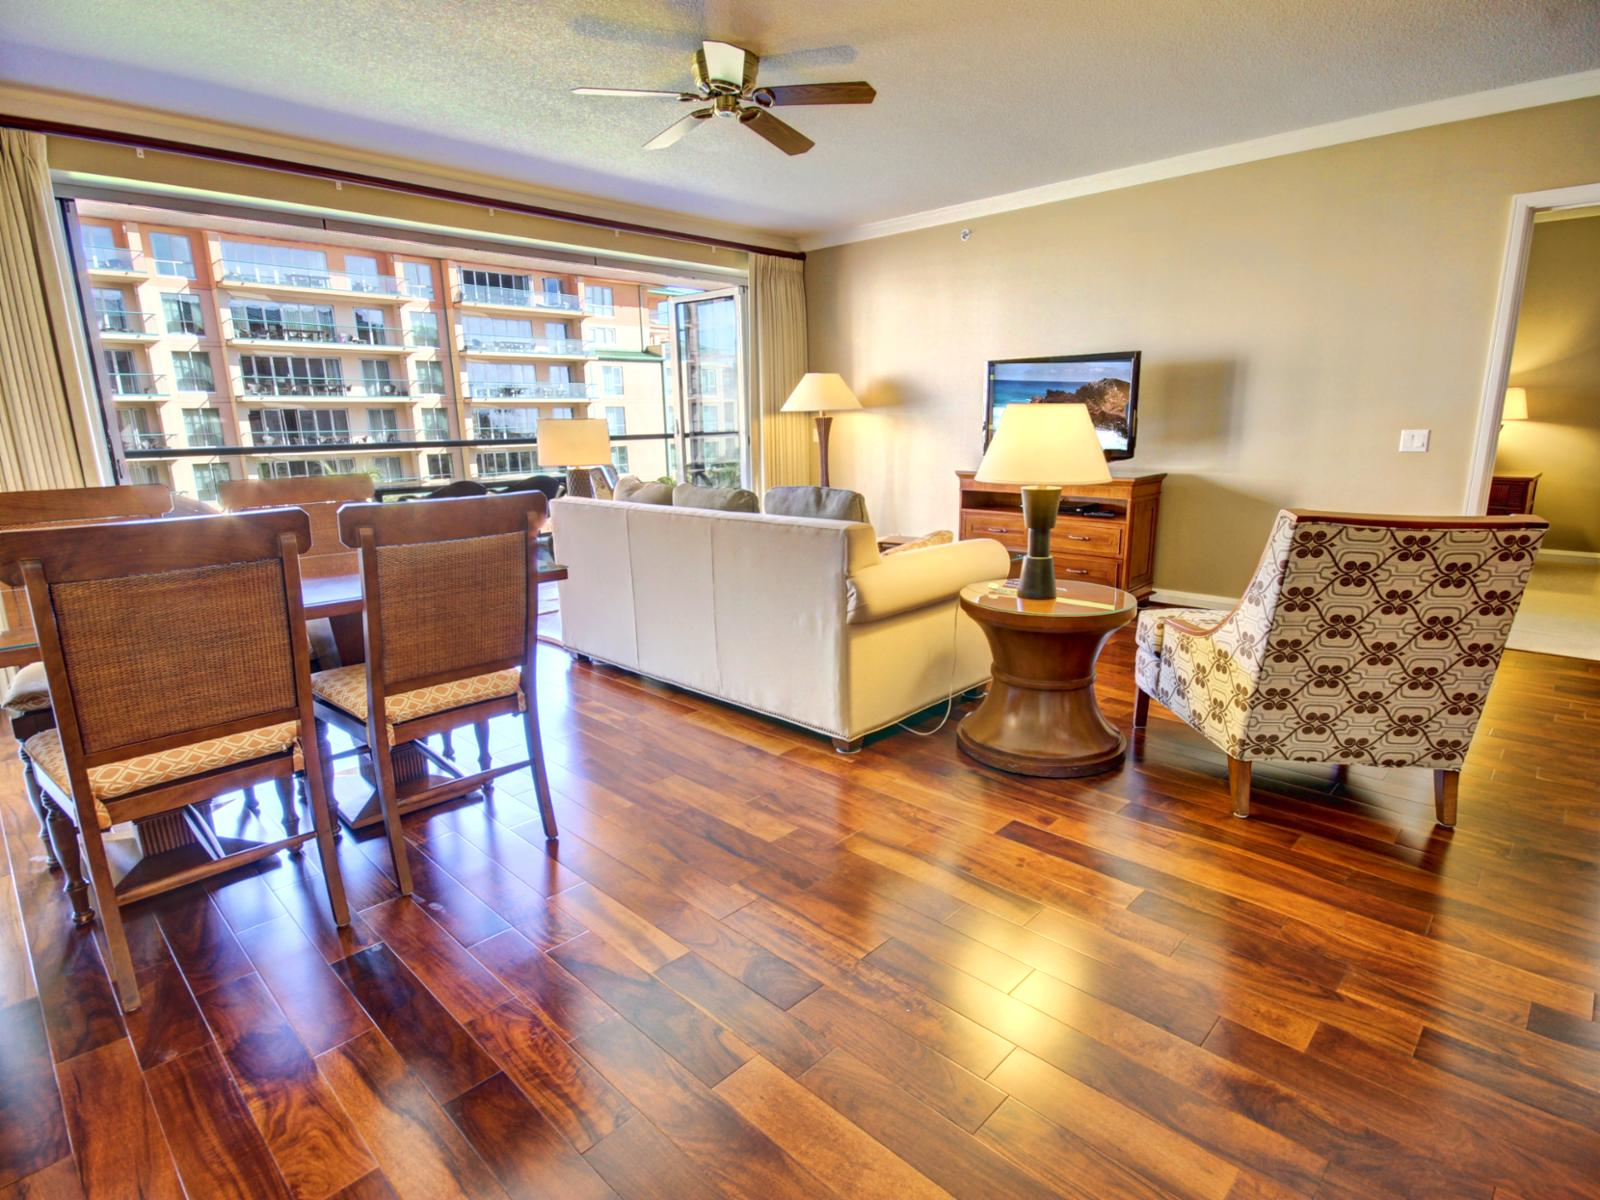 This beautiful 2 bedroom / 2 bath unit has new hardwood floors and a great open floor plan.